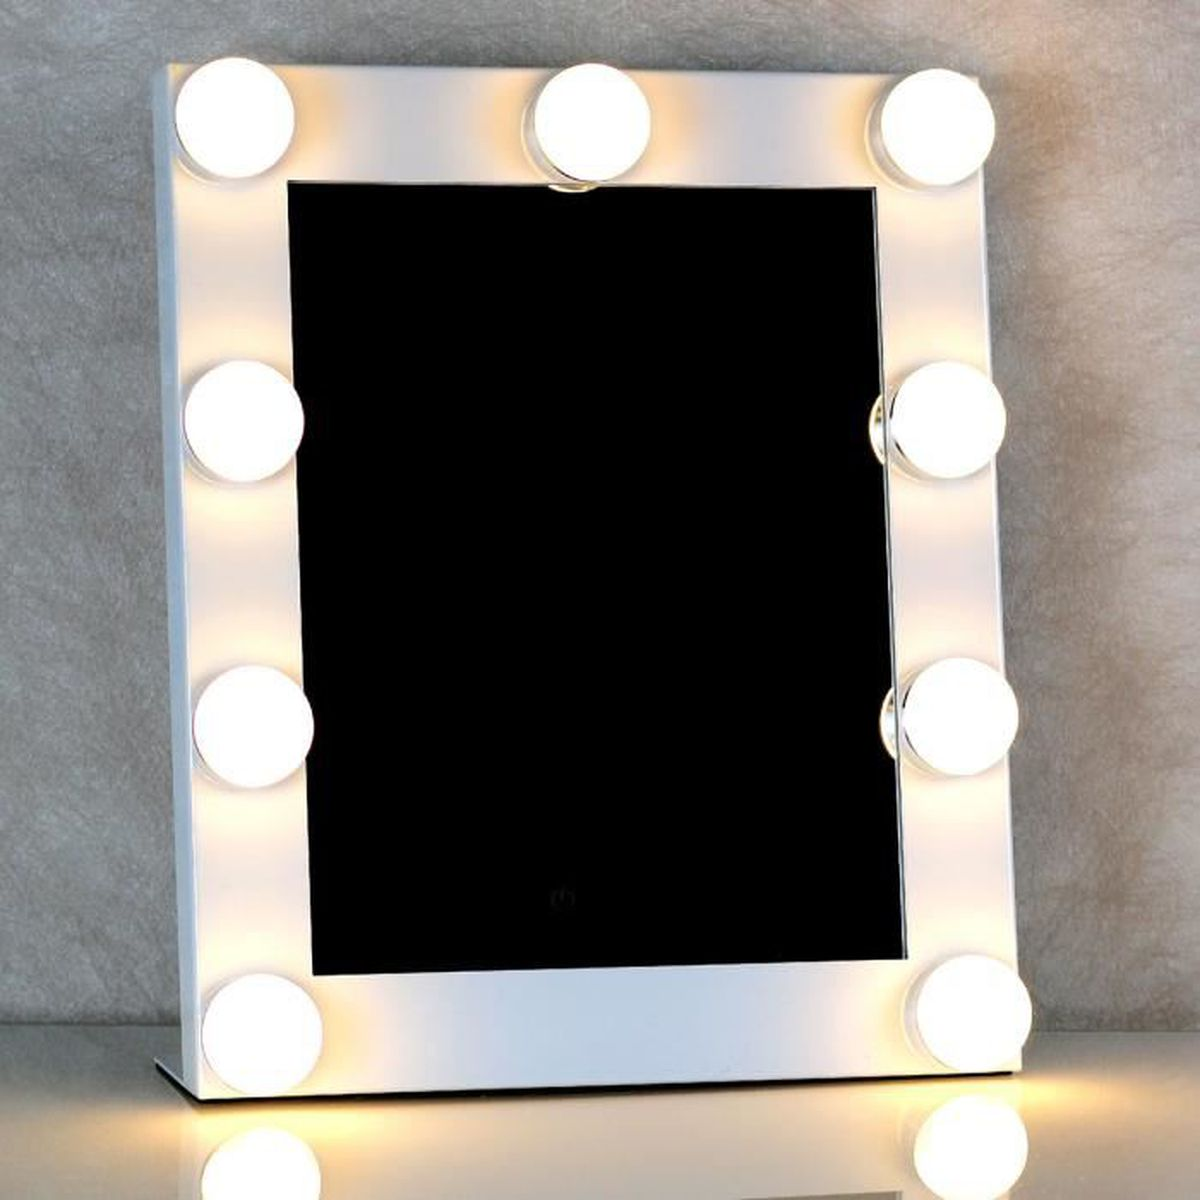 miroir de maquillage cran tactile 9leds hollywood clair. Black Bedroom Furniture Sets. Home Design Ideas